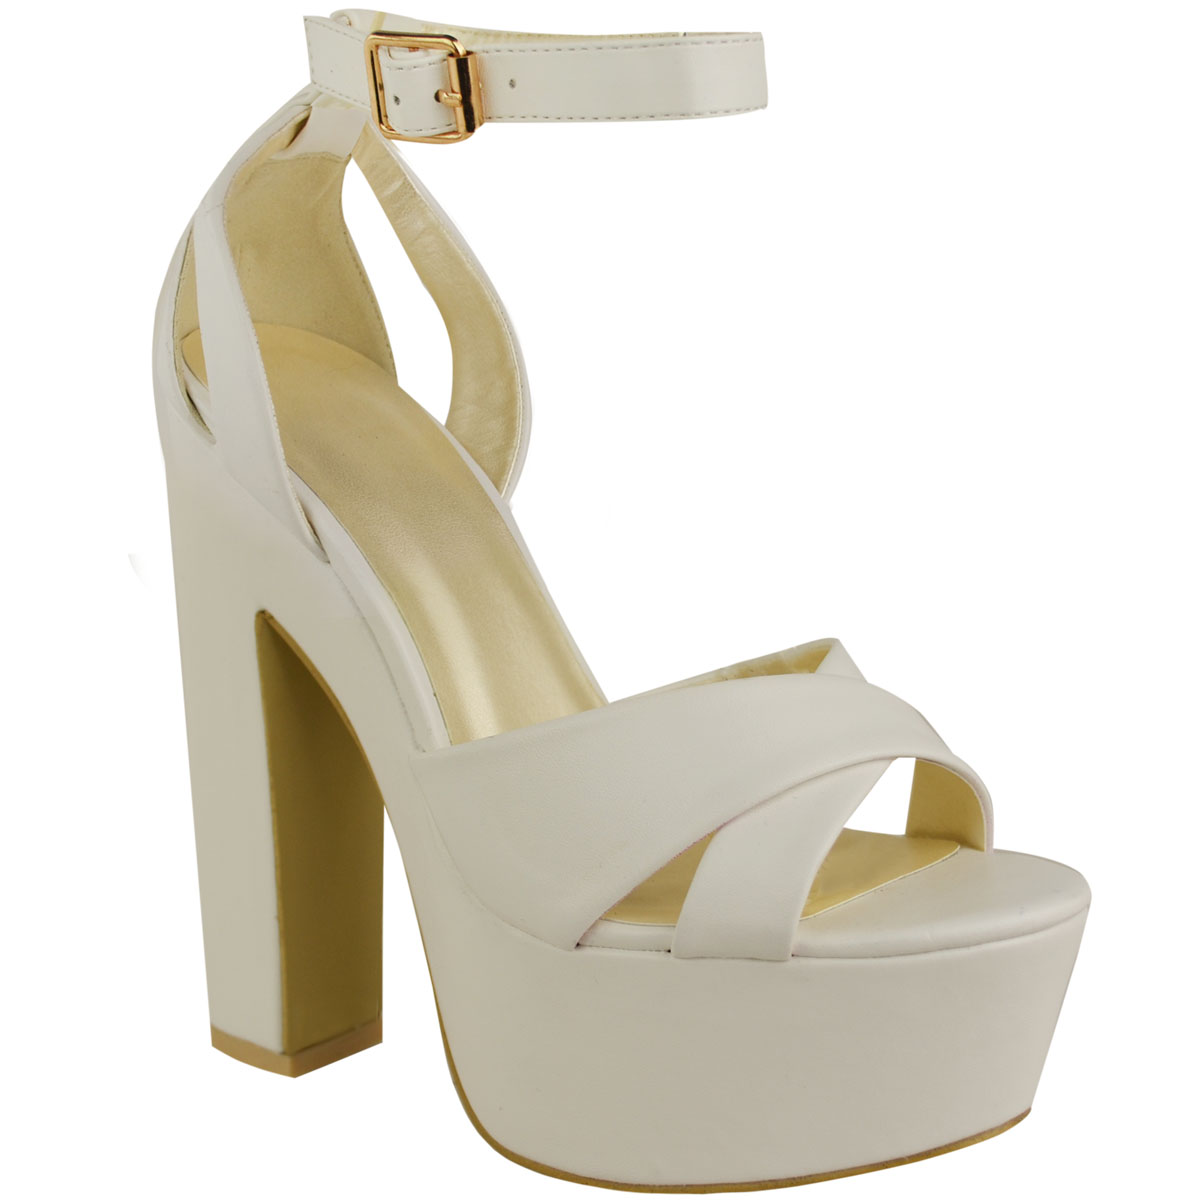 NEW WOMENS LADIES PLATFORM HIGH HEEL SANDALS CHUNKY CROSS OVER STRAPPY SHOES